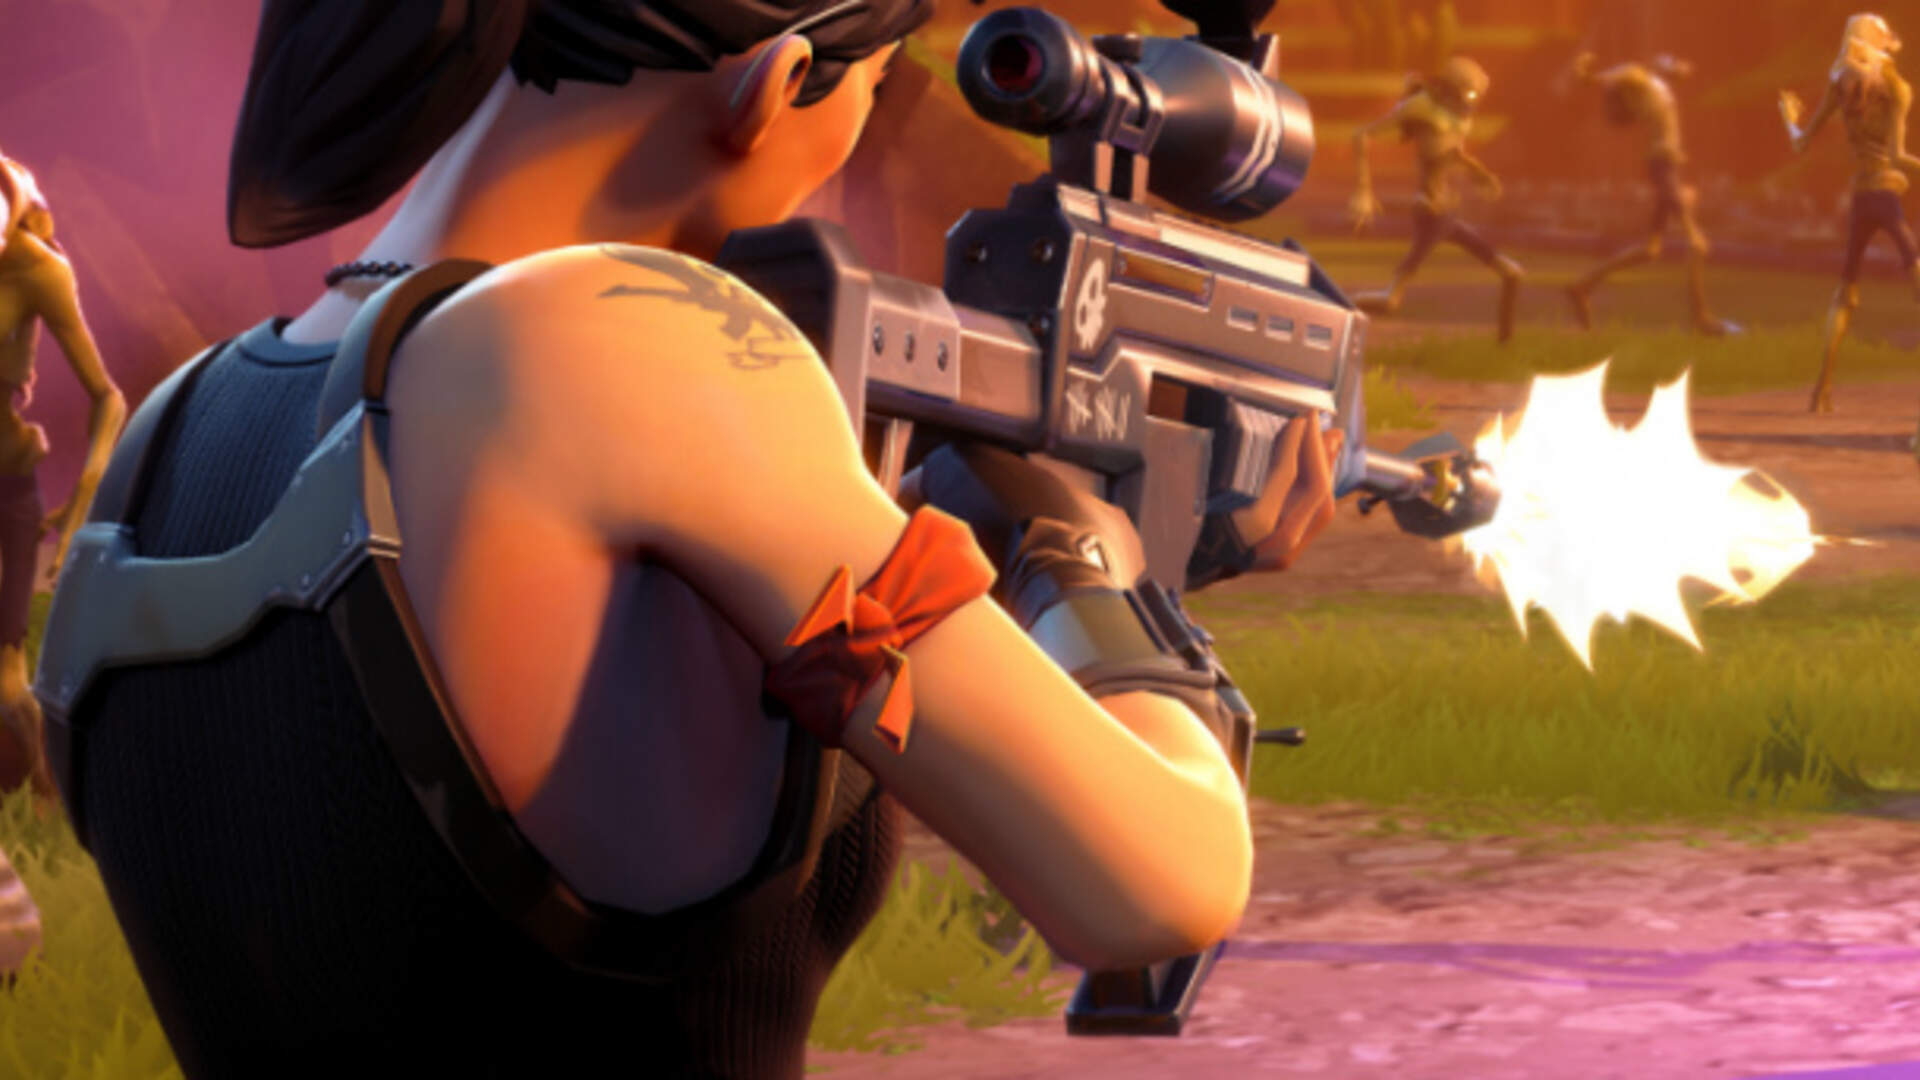 Fortnite had Cross-Platform Play Between PS4 and Xbox One for a few Glorious Hours